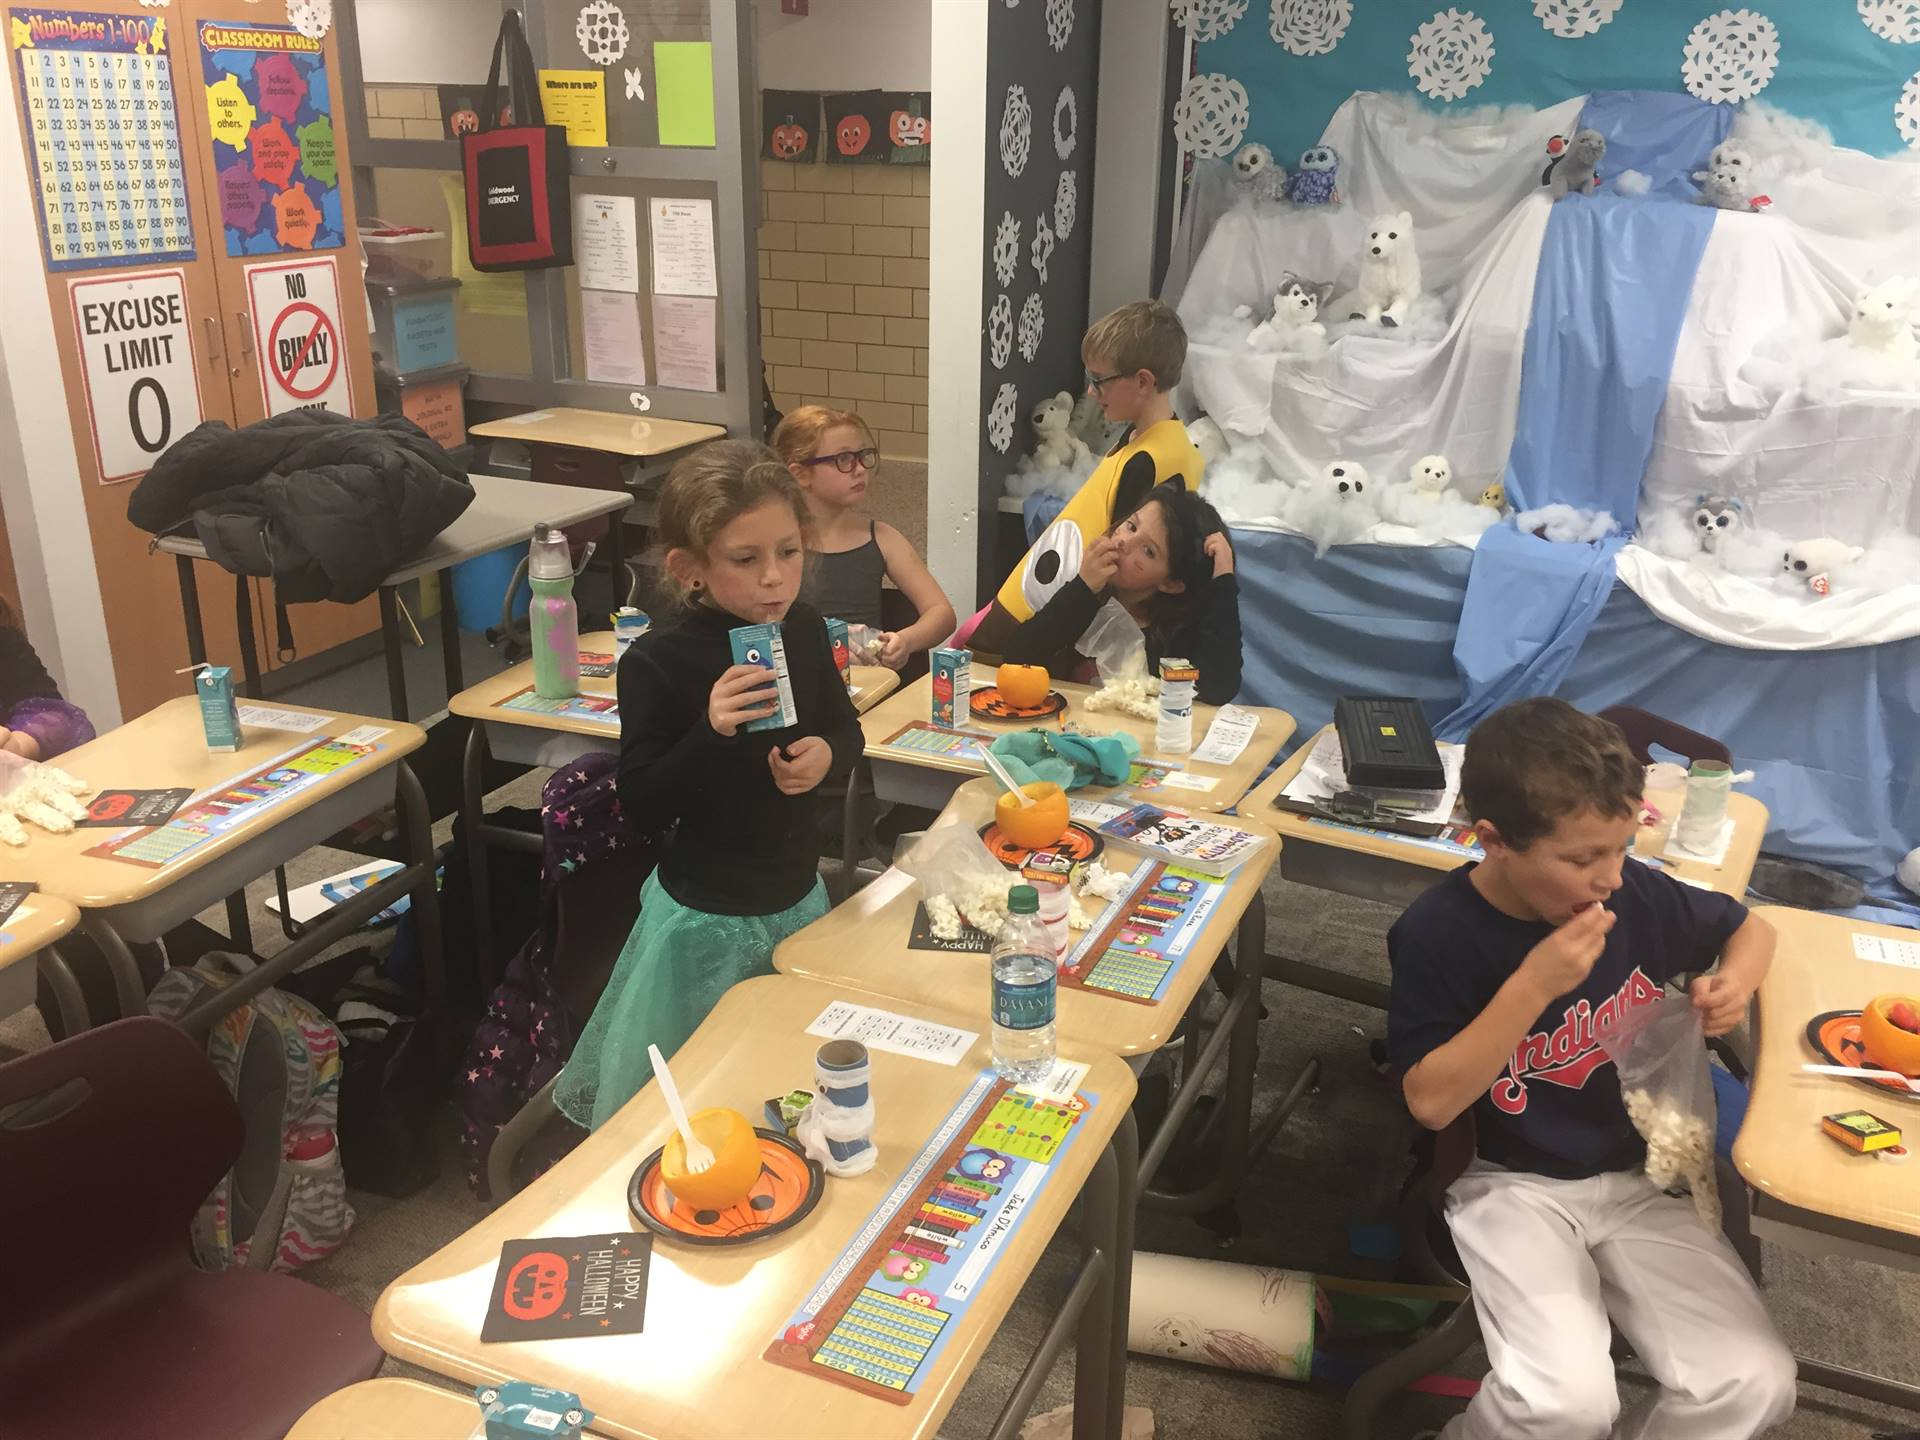 Students eating at Halloween party